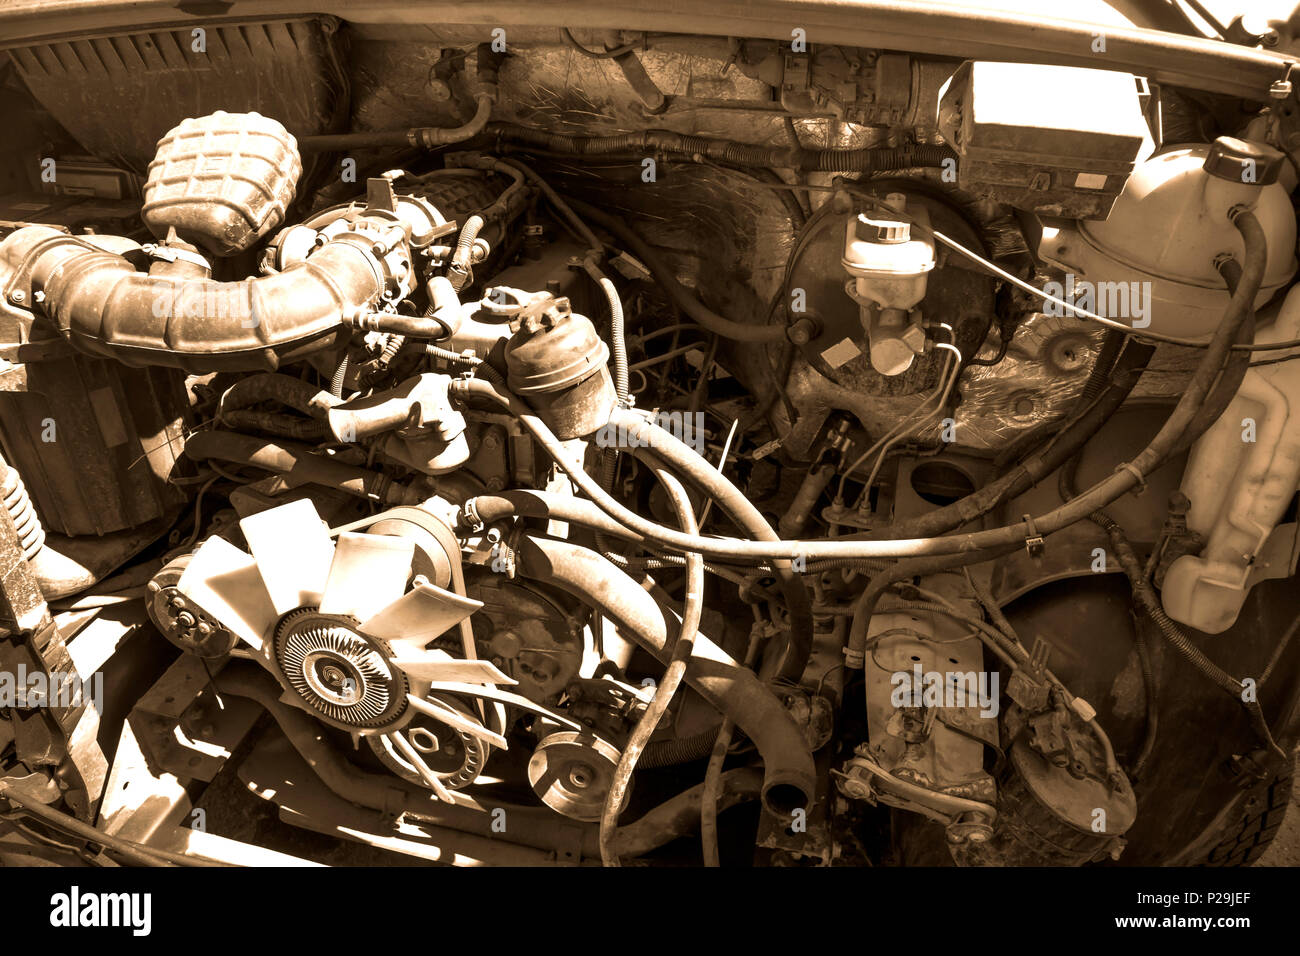 Old broken and dirty car engine close up, view under the hood in sepia tones Stock Photo